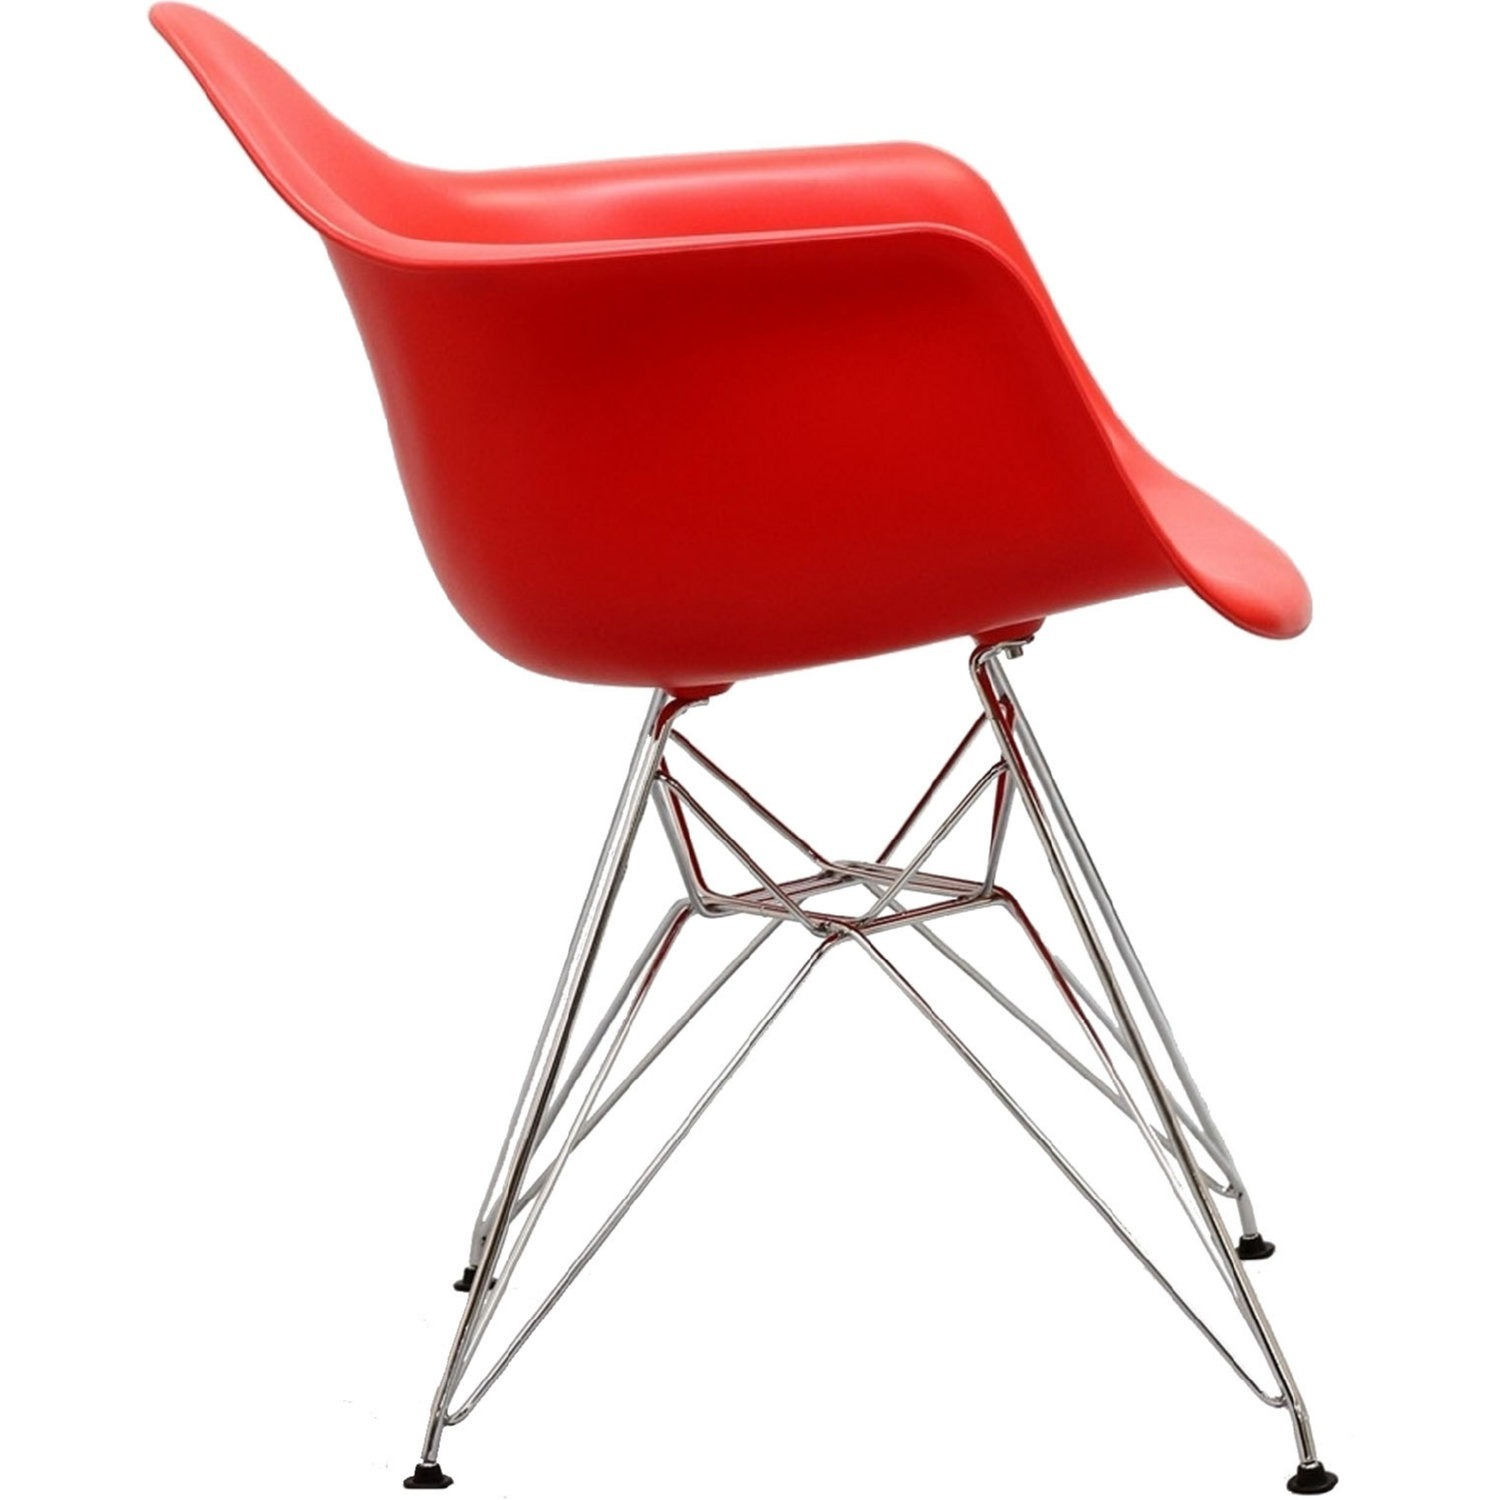 Modern Dining Chair In Red Finish W/ Steel Base - image-1